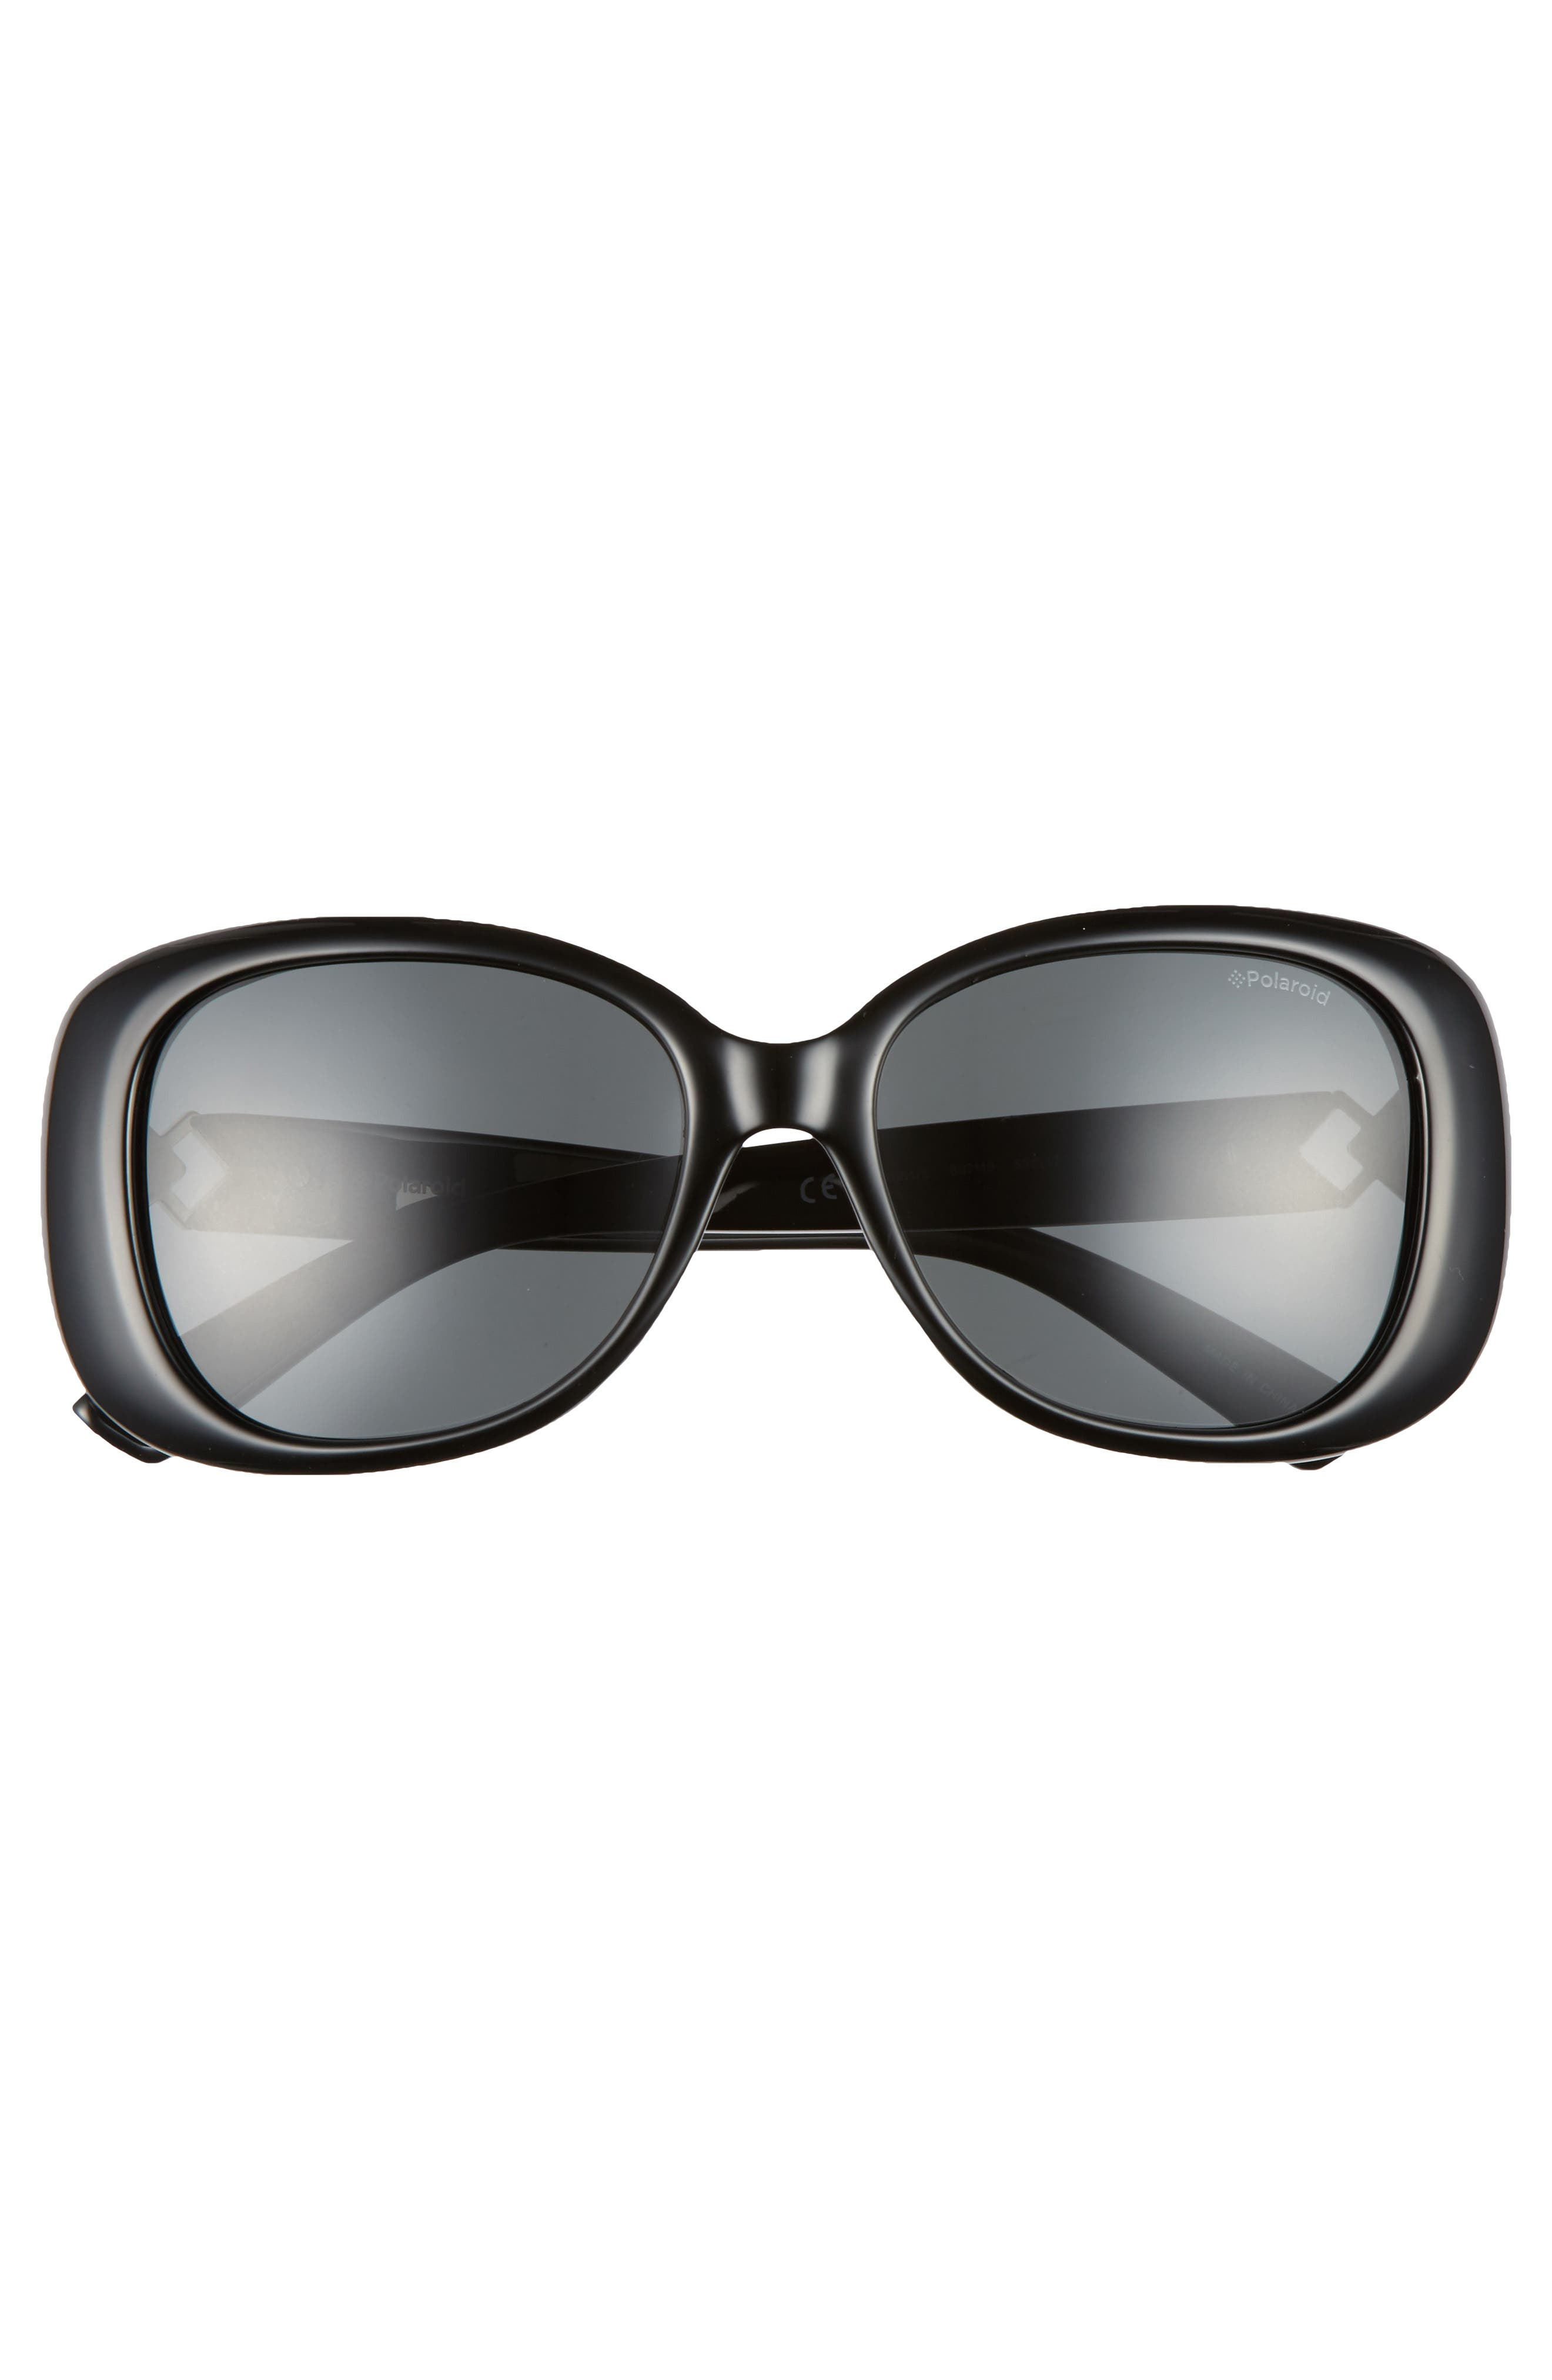 55mm Polarized Butterfly Sunglasses,                             Alternate thumbnail 3, color,                             001